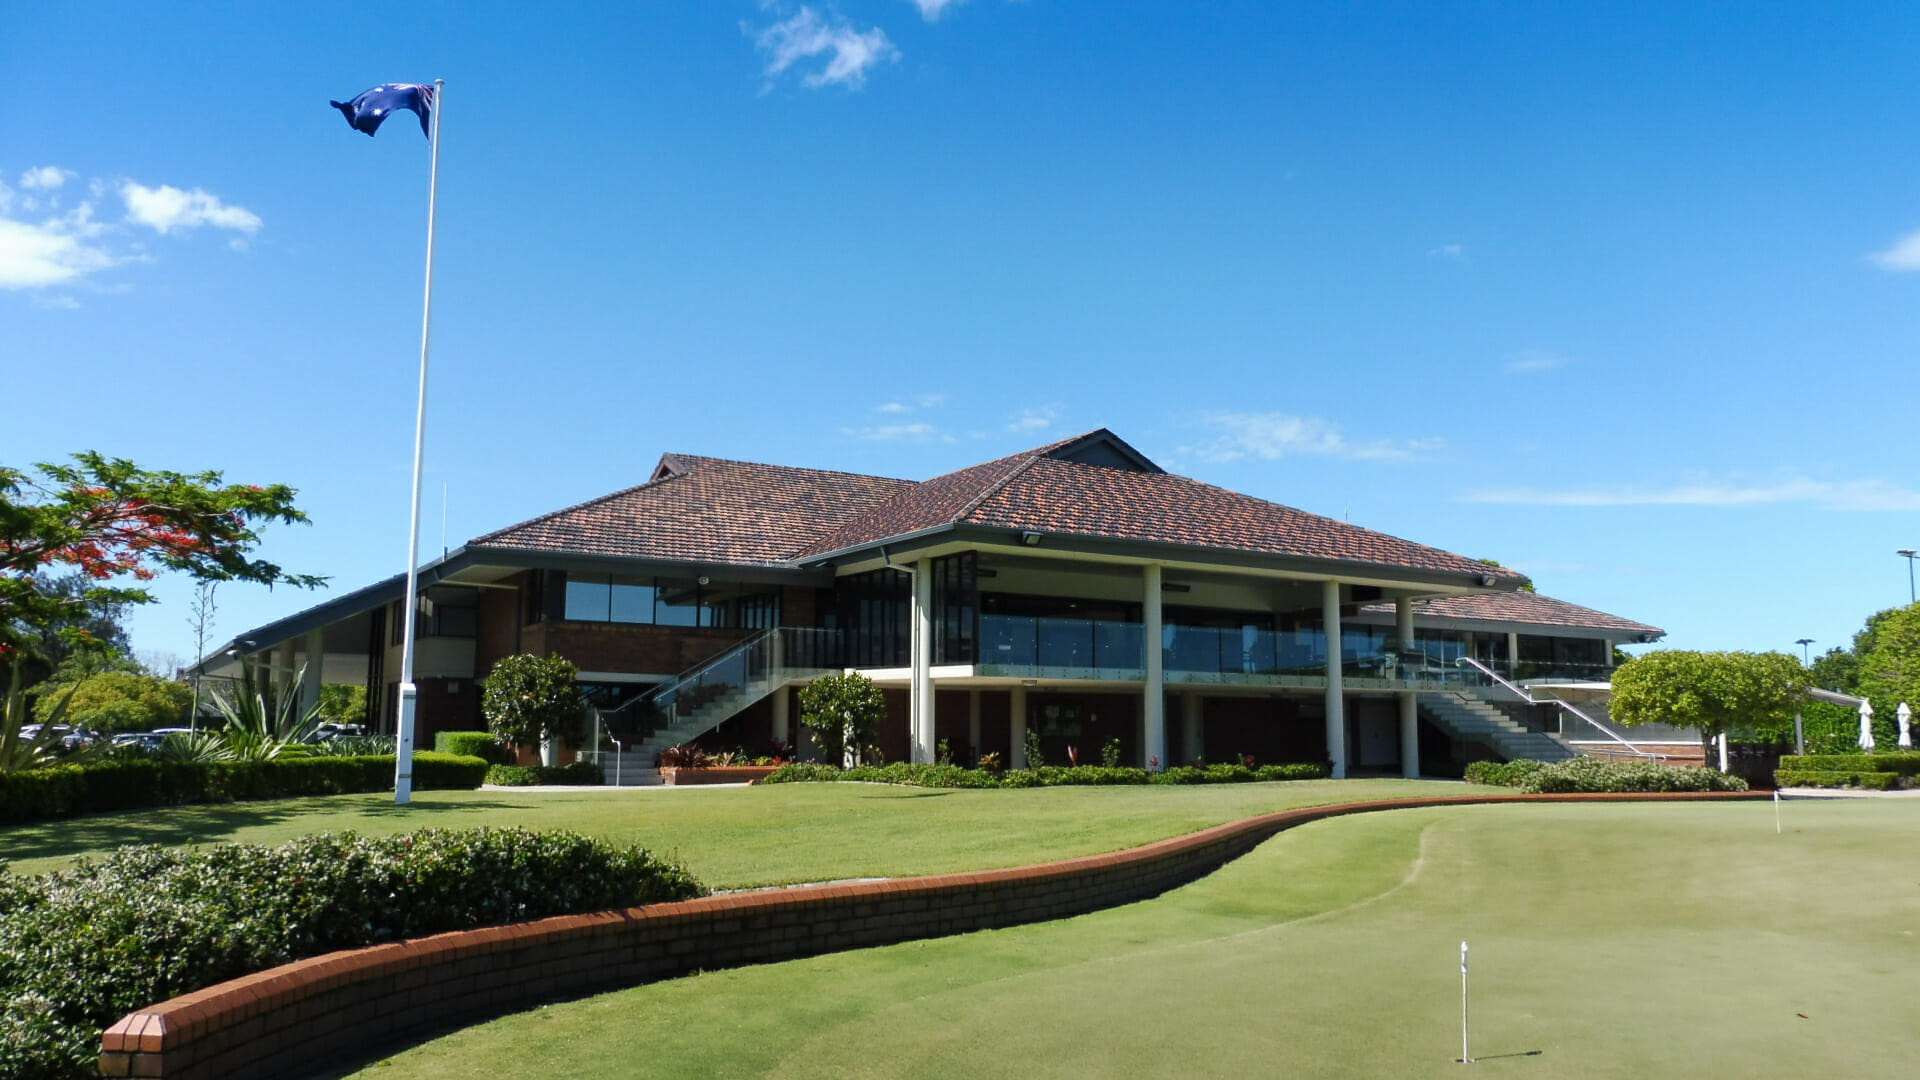 Golf clubhouse overlooks the Royal Queensland course